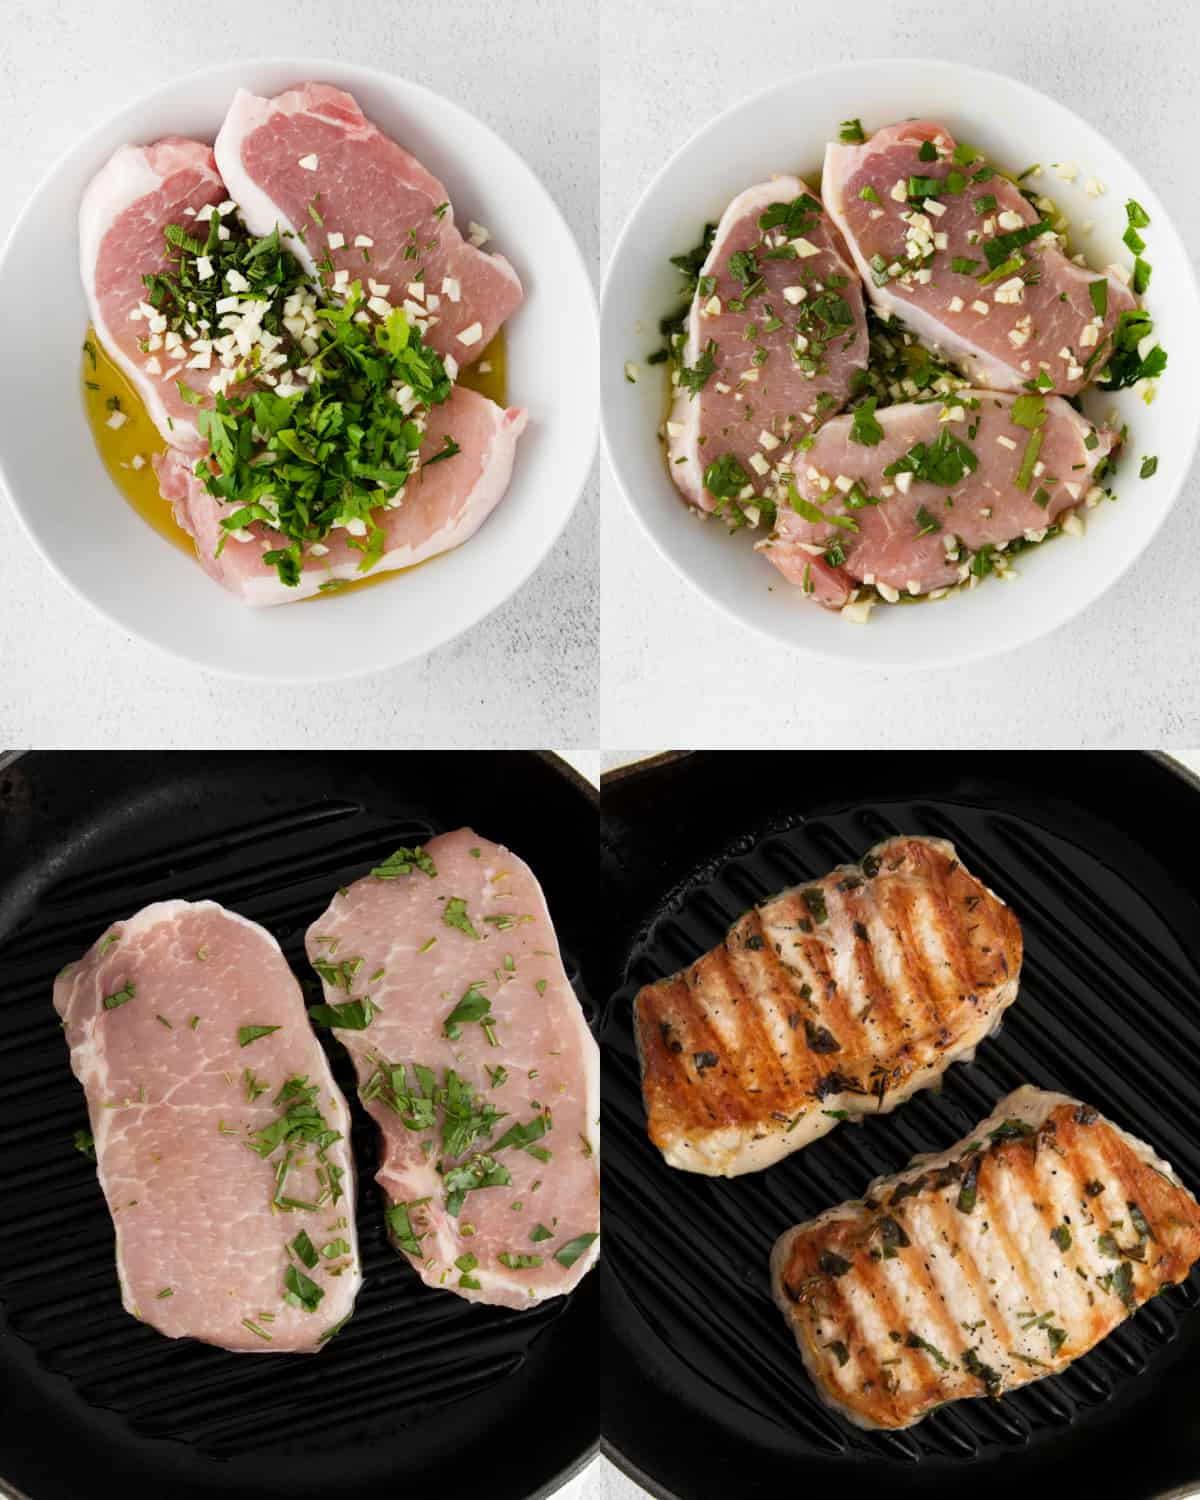 mixing together ingredients for pork chops in a bowl and grilling